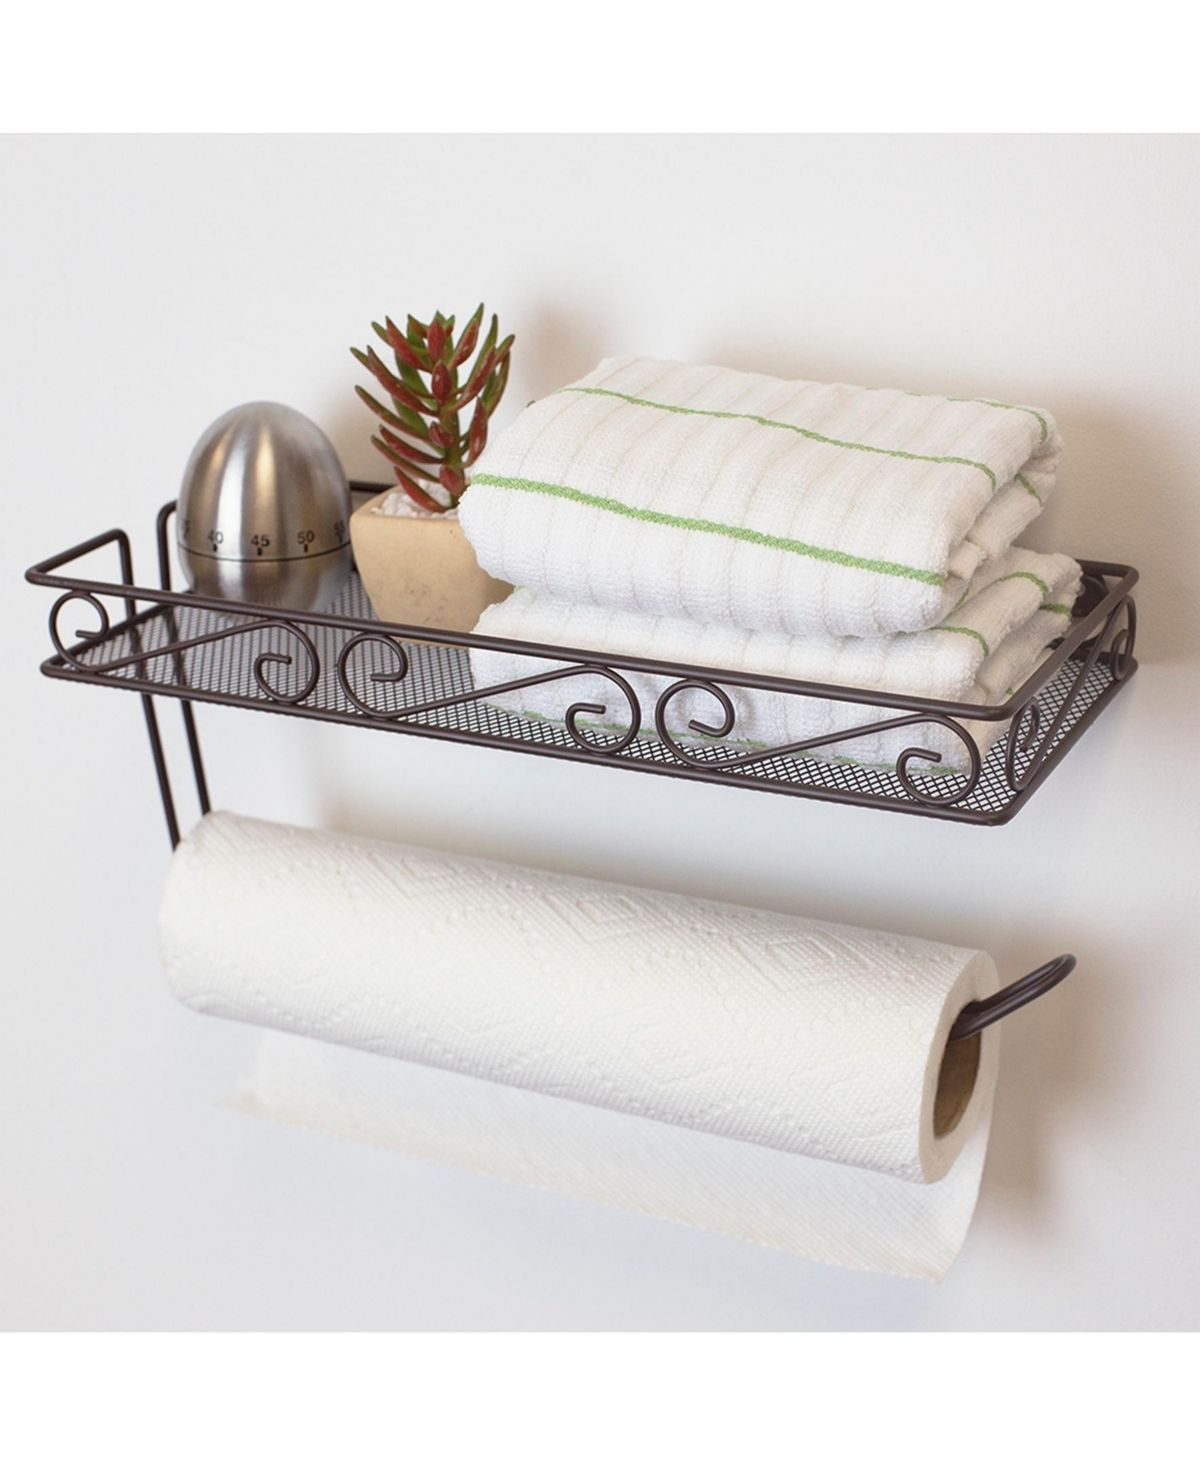 Home Basics Hds Trading Scroll Collection Wall Mounted Paper Towel Holder With Basket Reviews Home Macy S Towel Holder Paper Towel Holder Home Basics